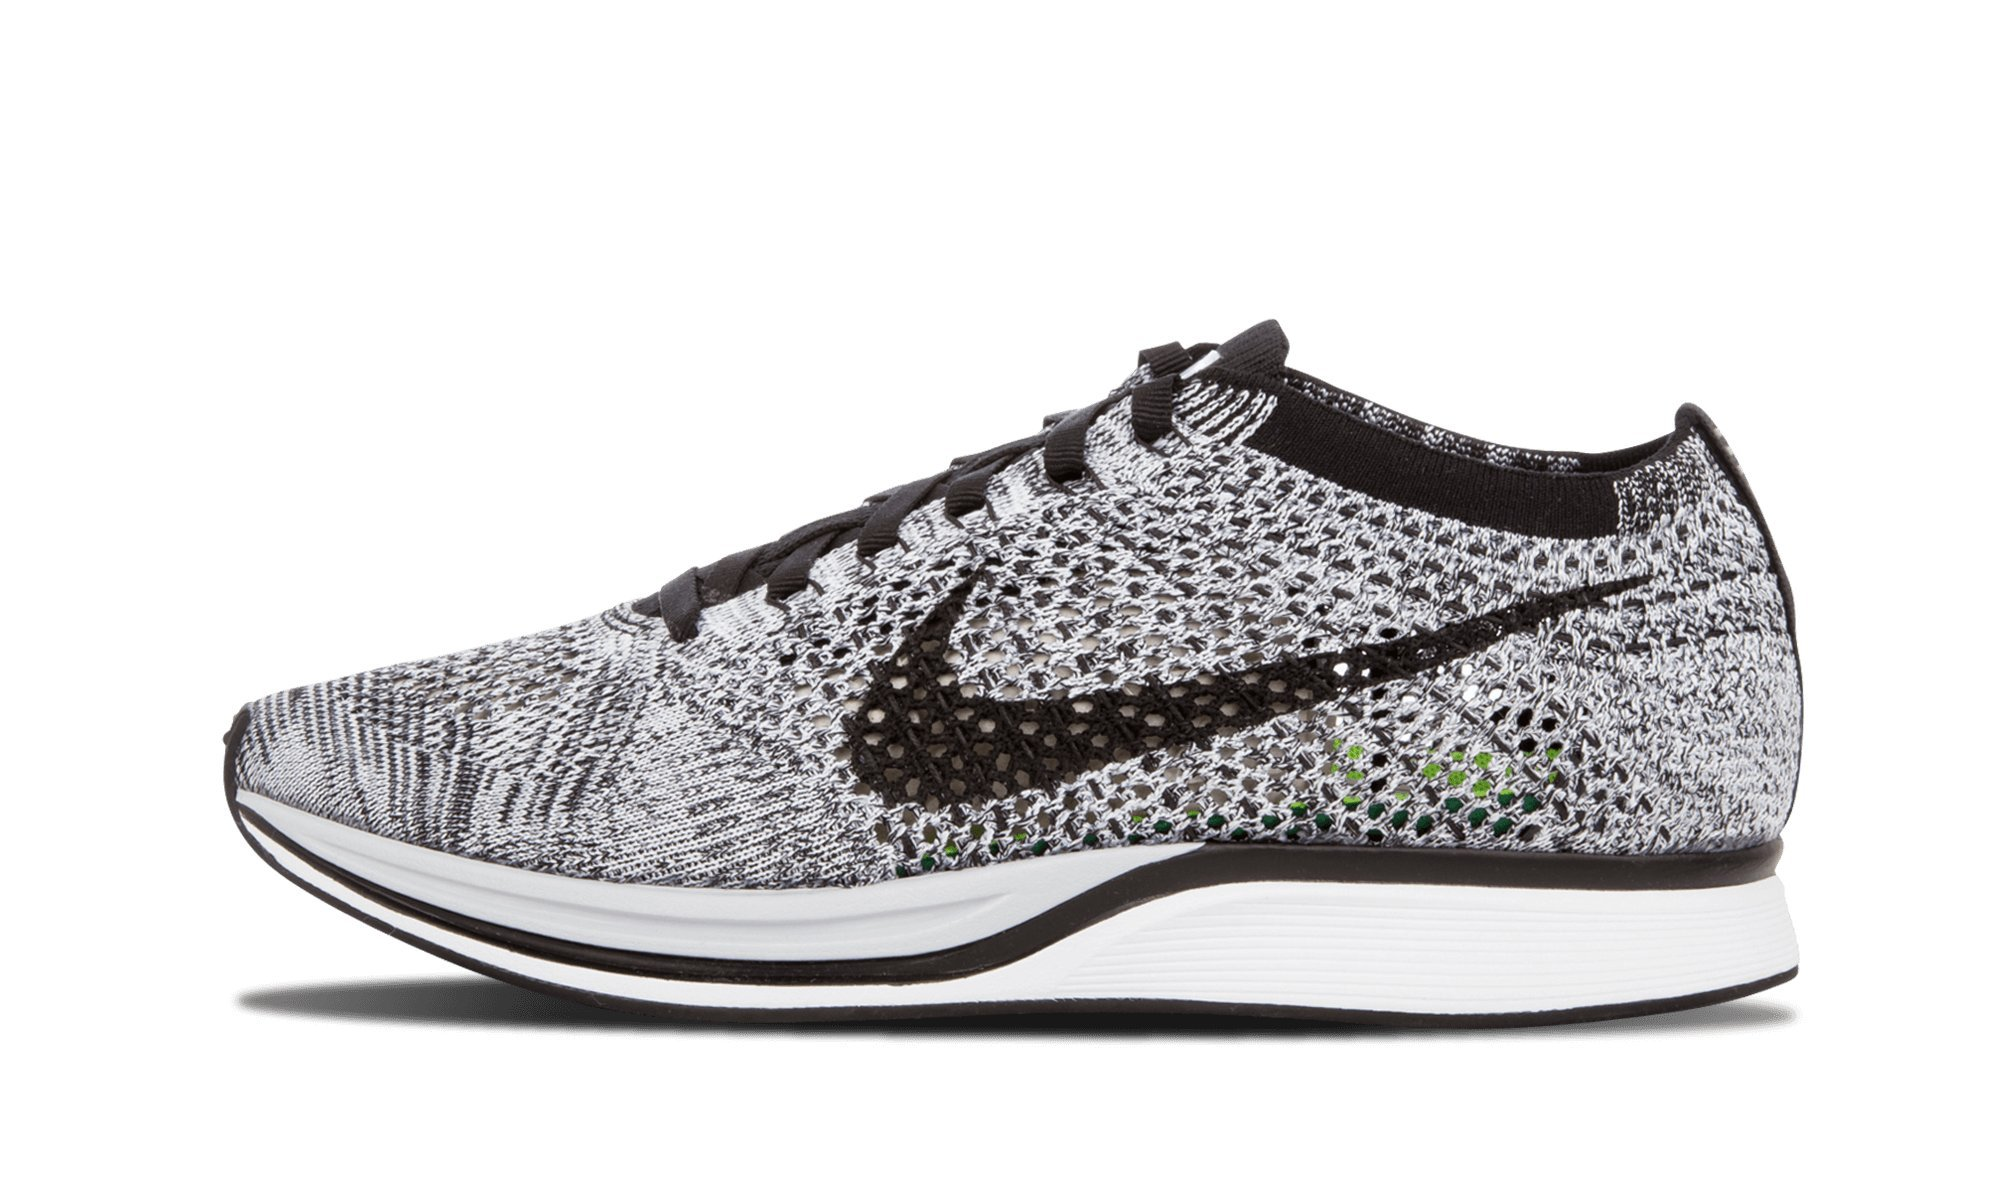 the latest 3ab7c c3ed2 Galleon - Nike Flyknit Racer - 10 - 526628 101